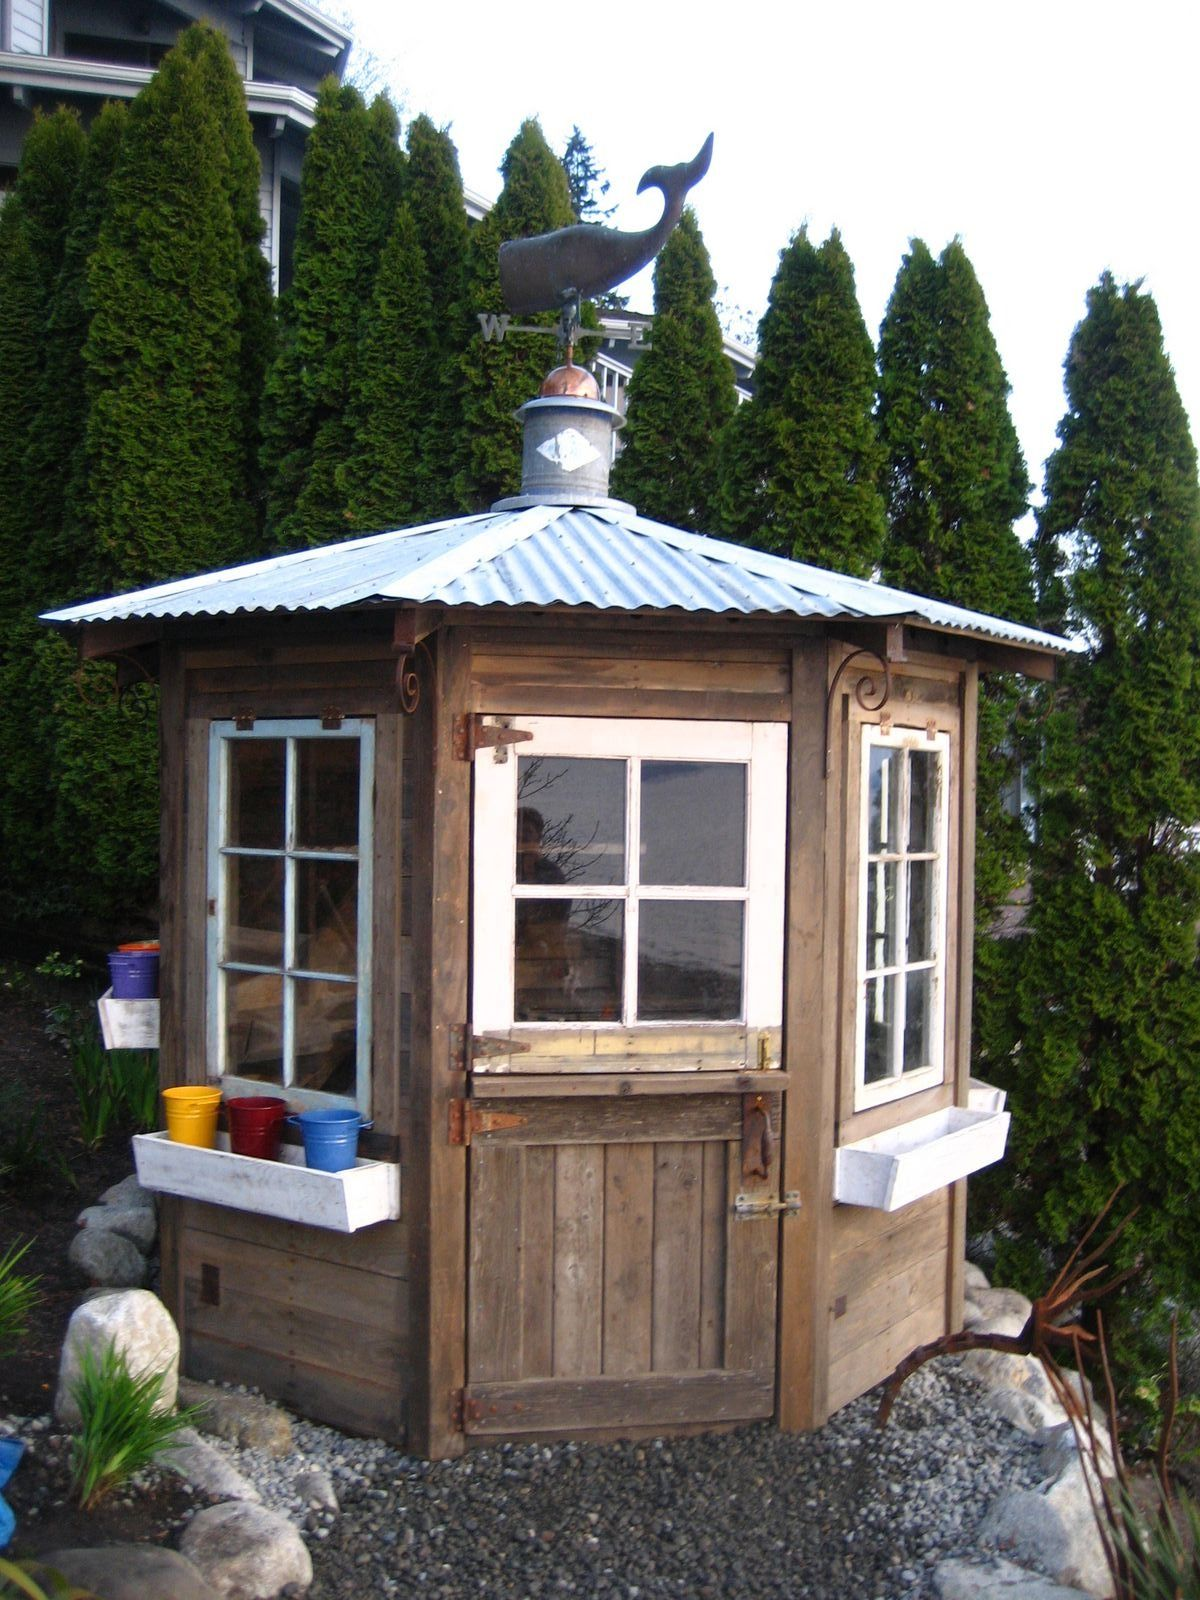 A Dutch door, whale weathervane and colorful pots in the window ...